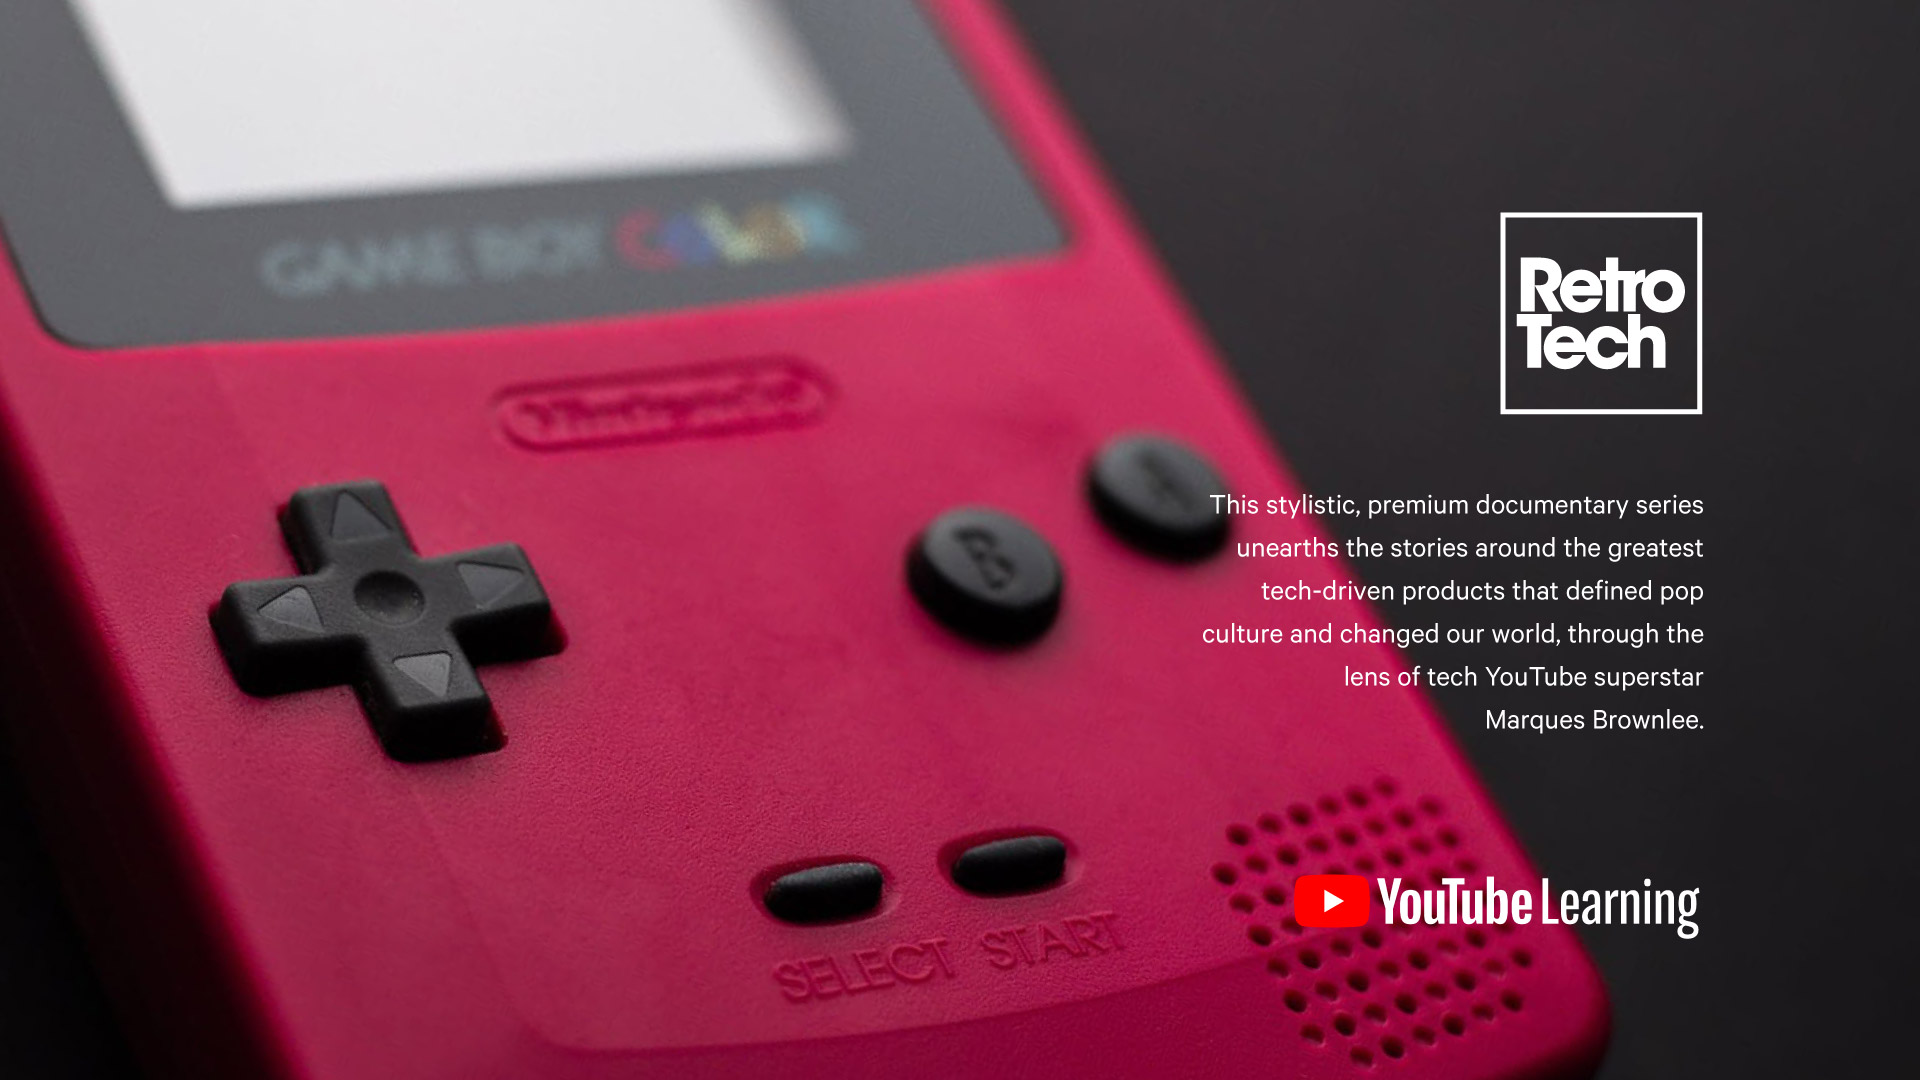 red-game-boy-color-on-black-background-tilted-to-the-left-retro-tech-logo-youtube-learning-logo